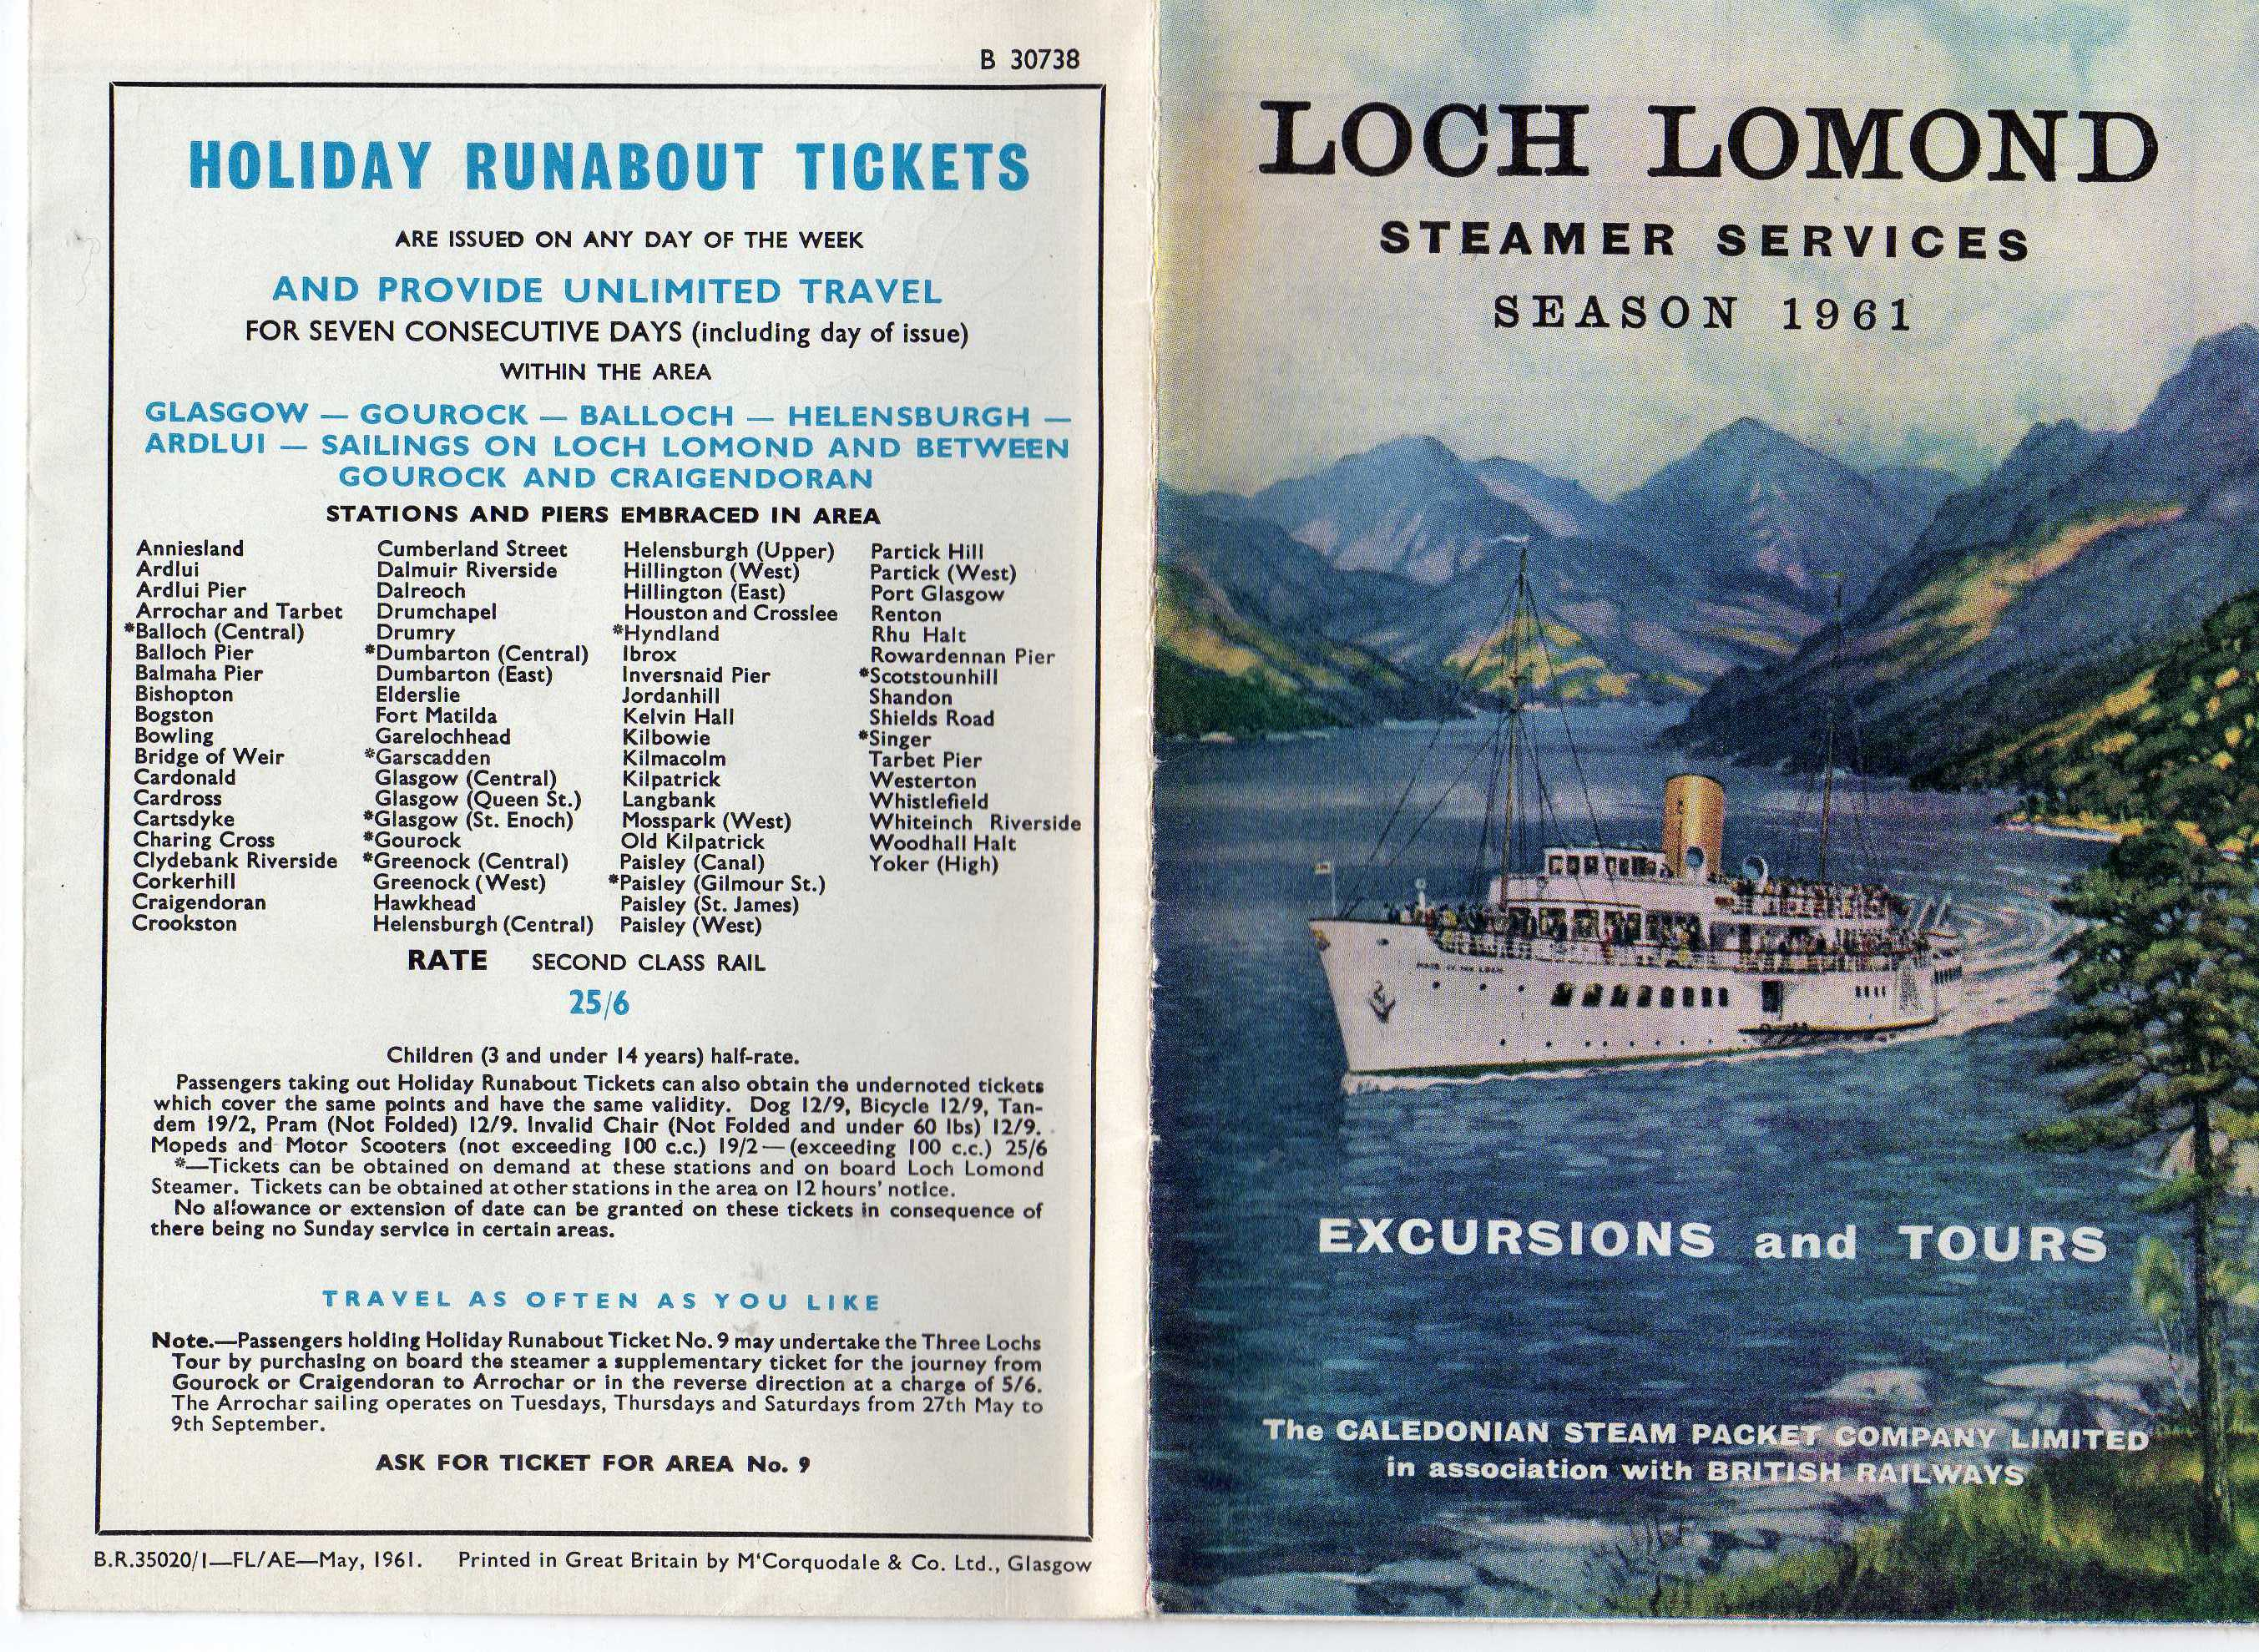 1961 timetable